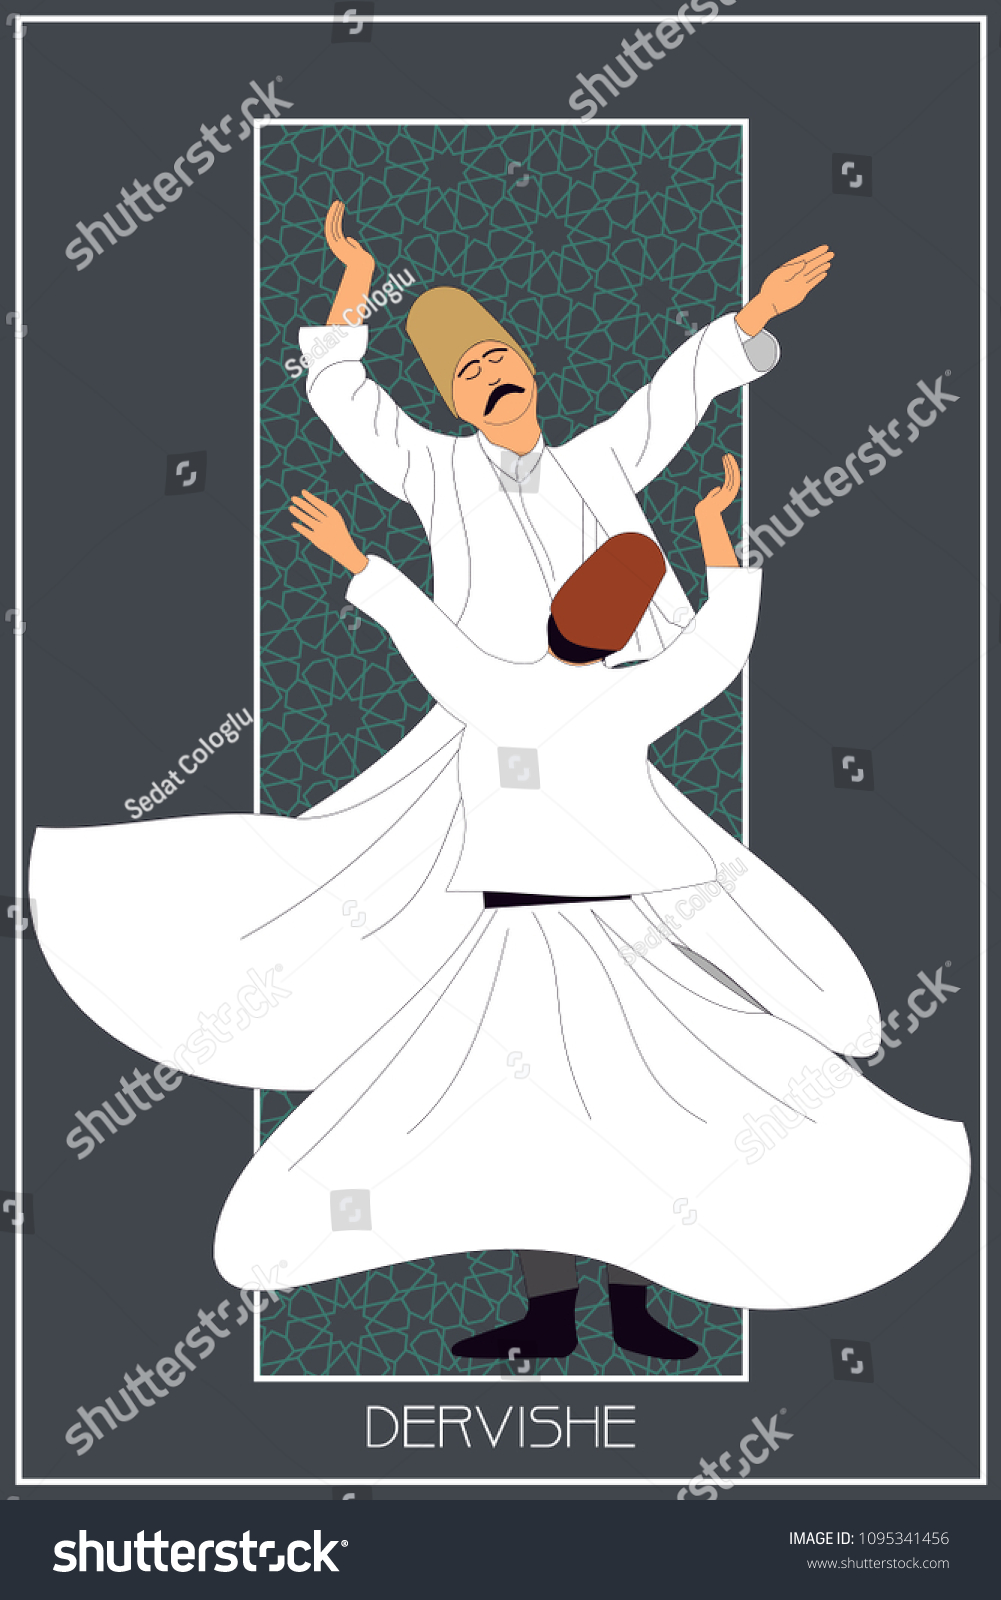 stock-vector-dervish-symbolic-study-of-mevlevi-mystical-dance-this-painting-represents-a-movement-of-this-1095341456